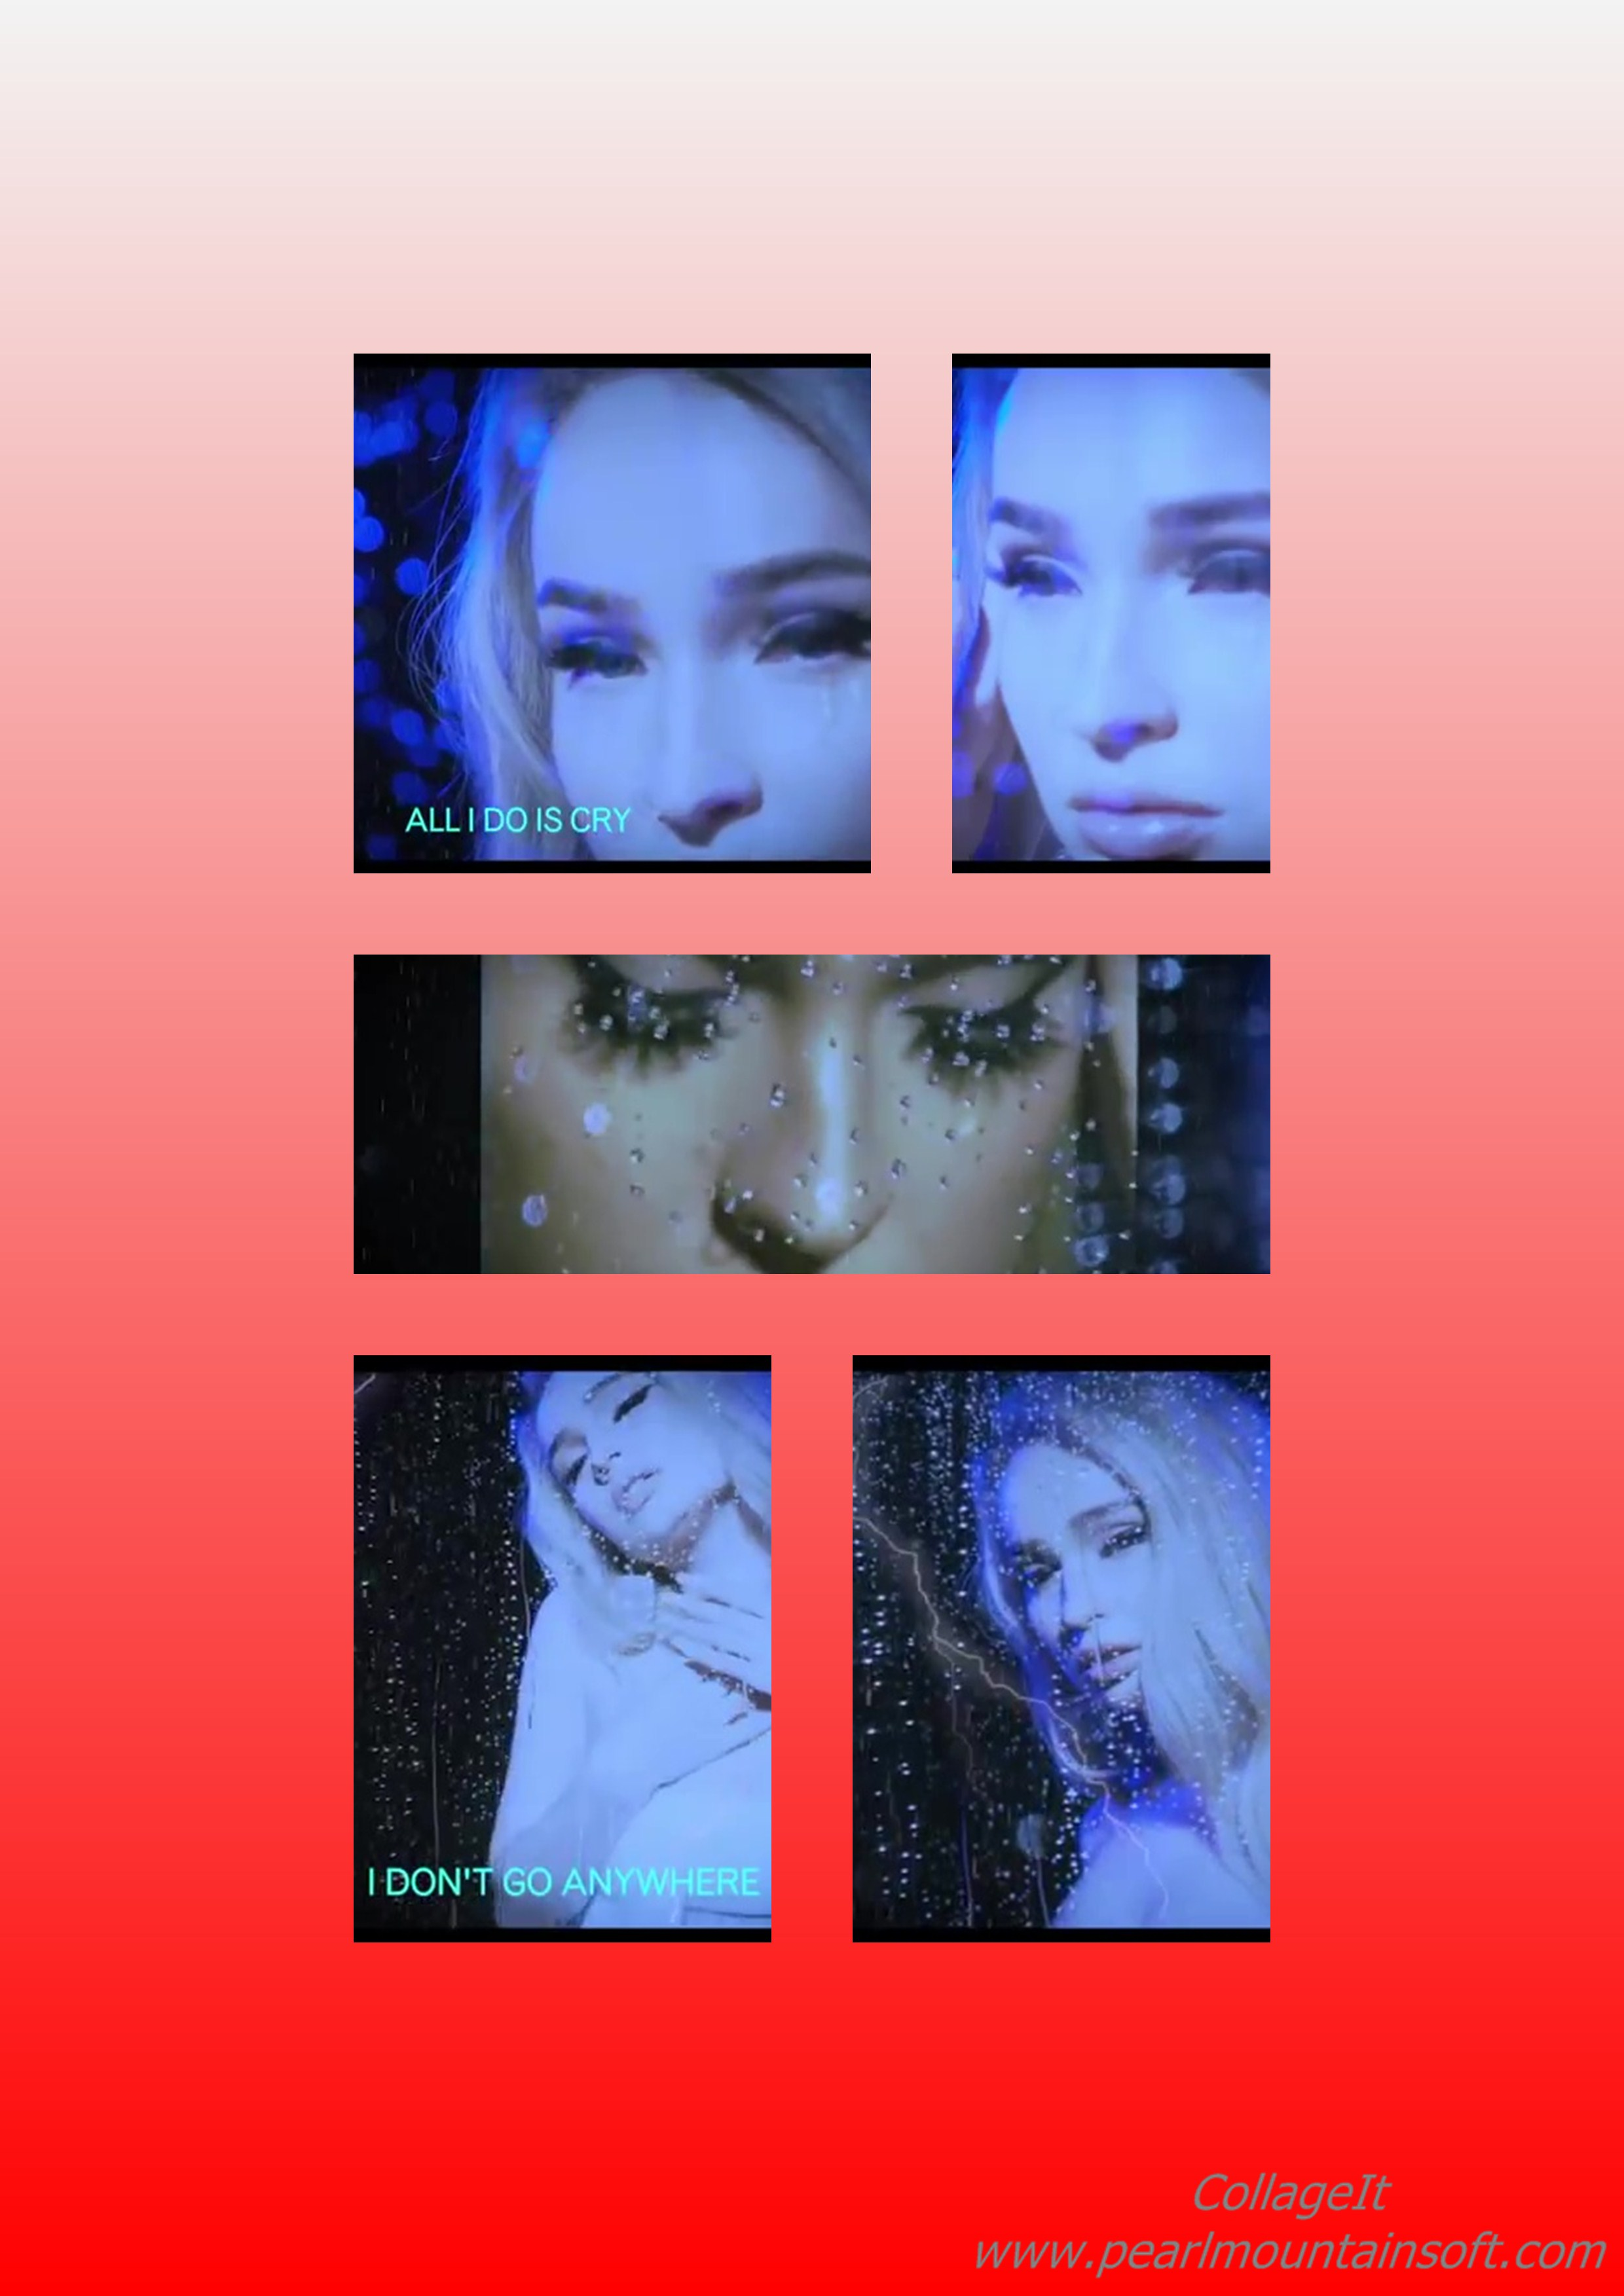 """(+LYRICS+TRANSLATION+MEANING) MUSIC REVIEW: ALL I DO IS CRY BY KIM PETRAS """"AWWW! KIM PETRAS GO REALLY CRY TIRE O!"""""""